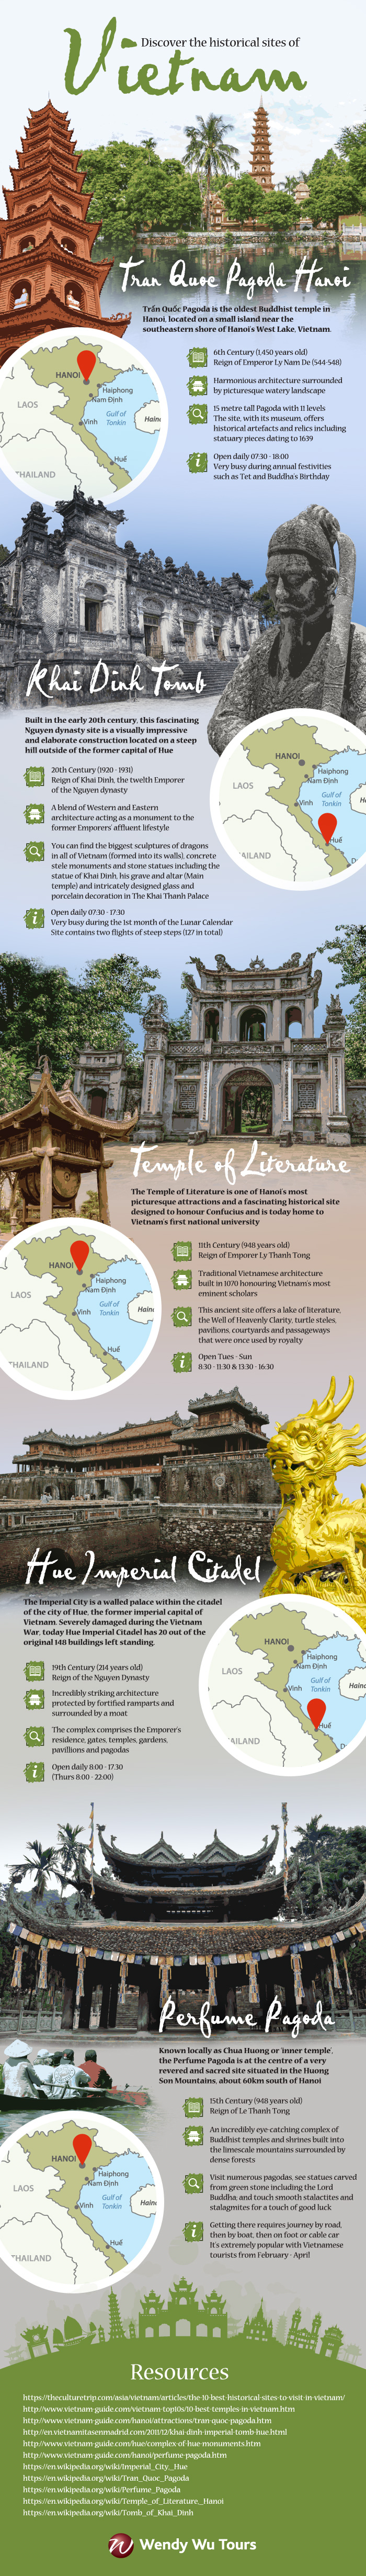 Discovering Vietnam's Historical Landmarks - Infographic